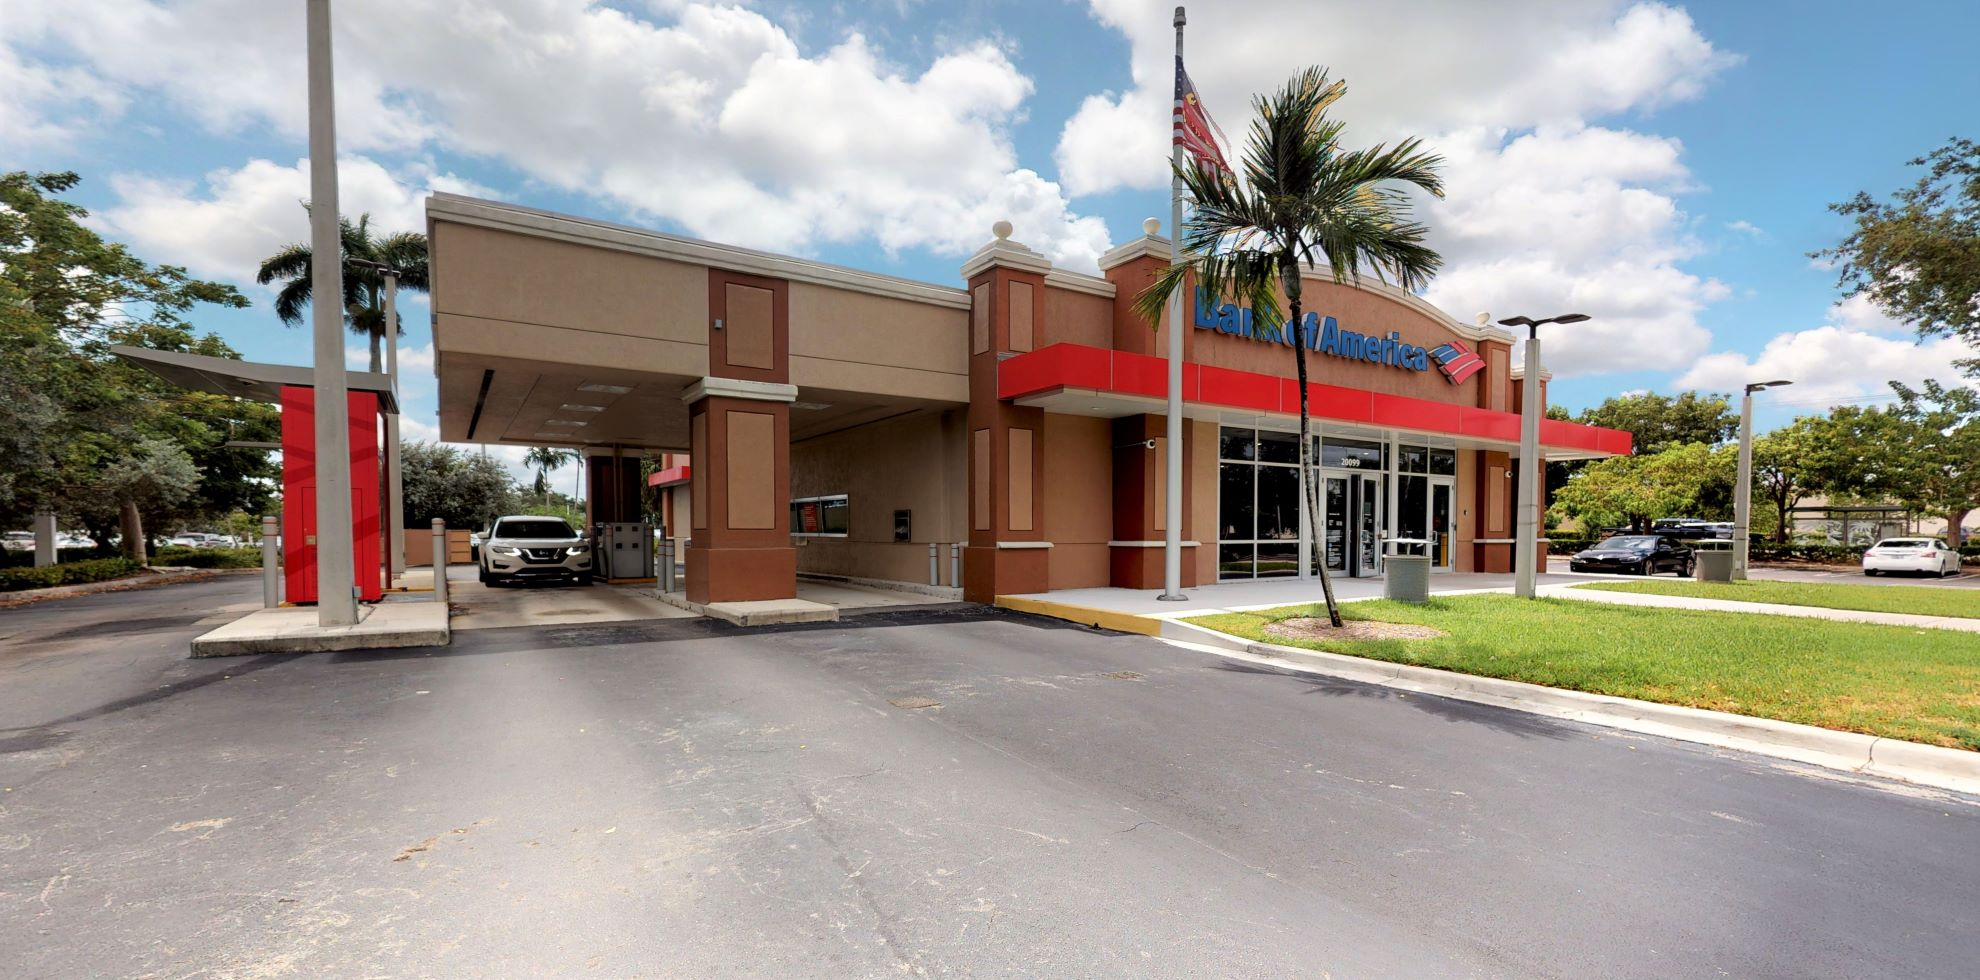 Bank of America financial center with drive-thru ATM | 20099 SW 127th Ave, Miami, FL 33177